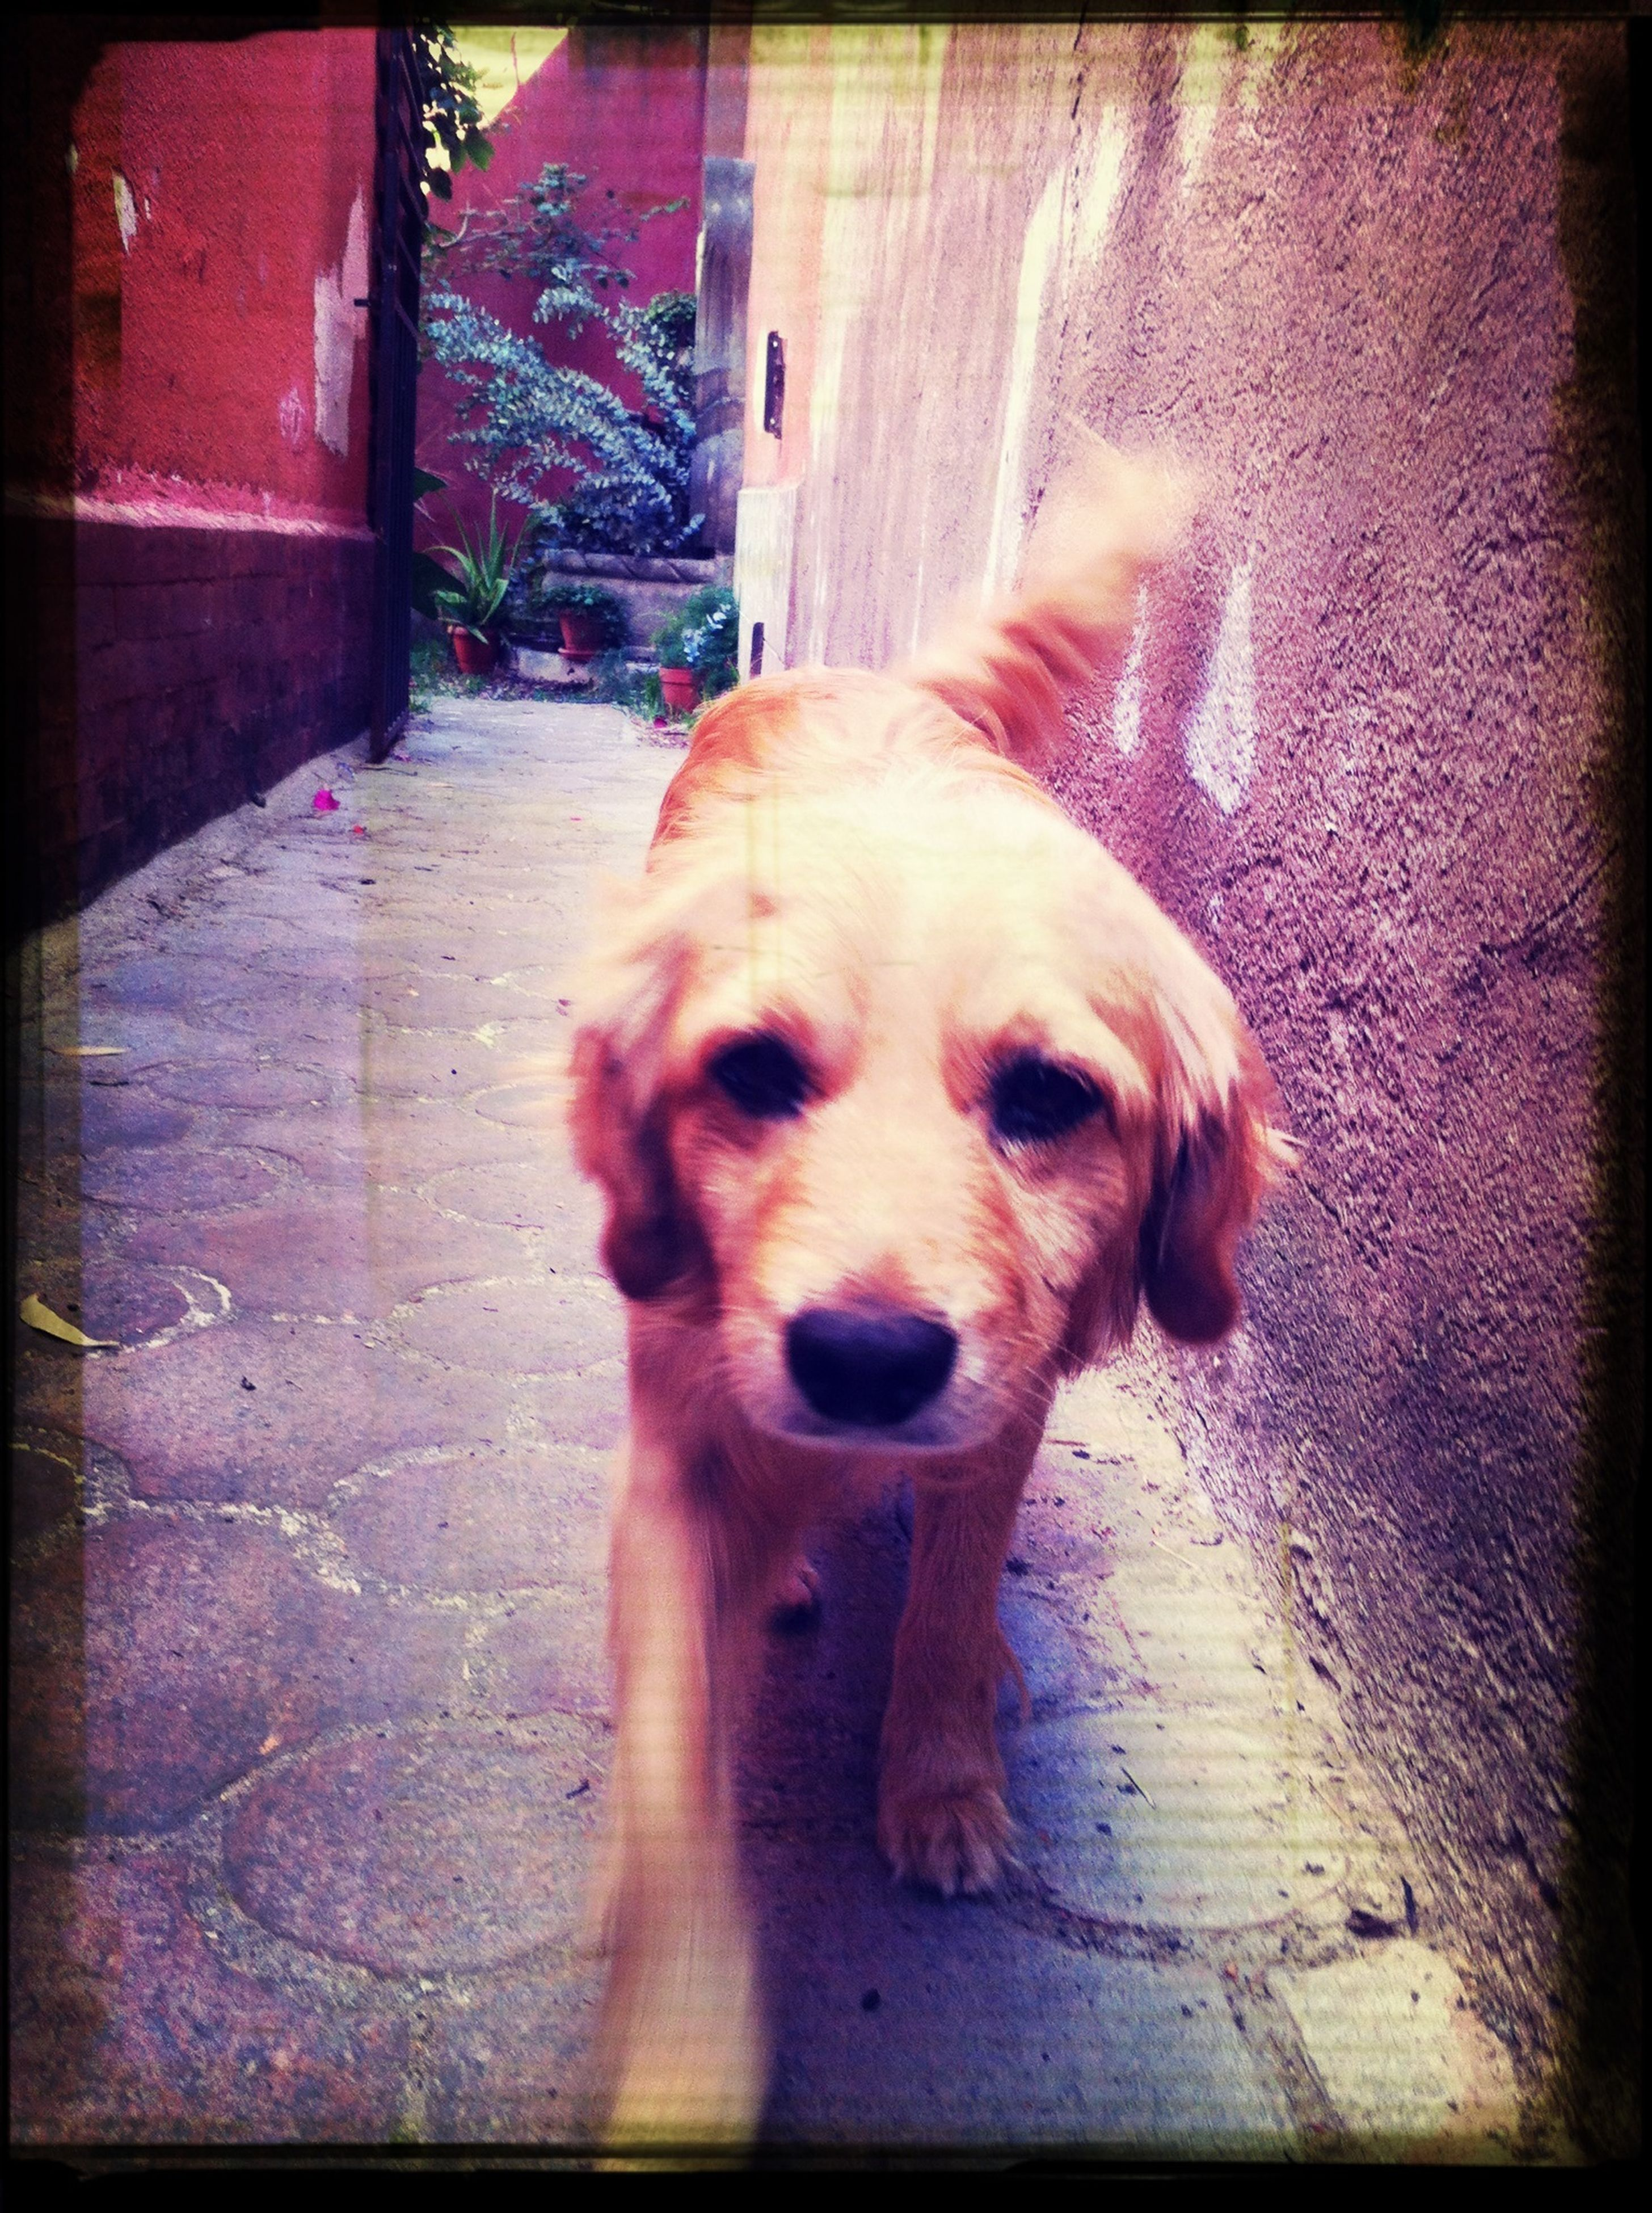 dog, pets, domestic animals, mammal, one animal, animal themes, transfer print, auto post production filter, sidewalk, portrait, street, looking at camera, day, outdoors, pet collar, full length, no people, footpath, sunlight, pet leash